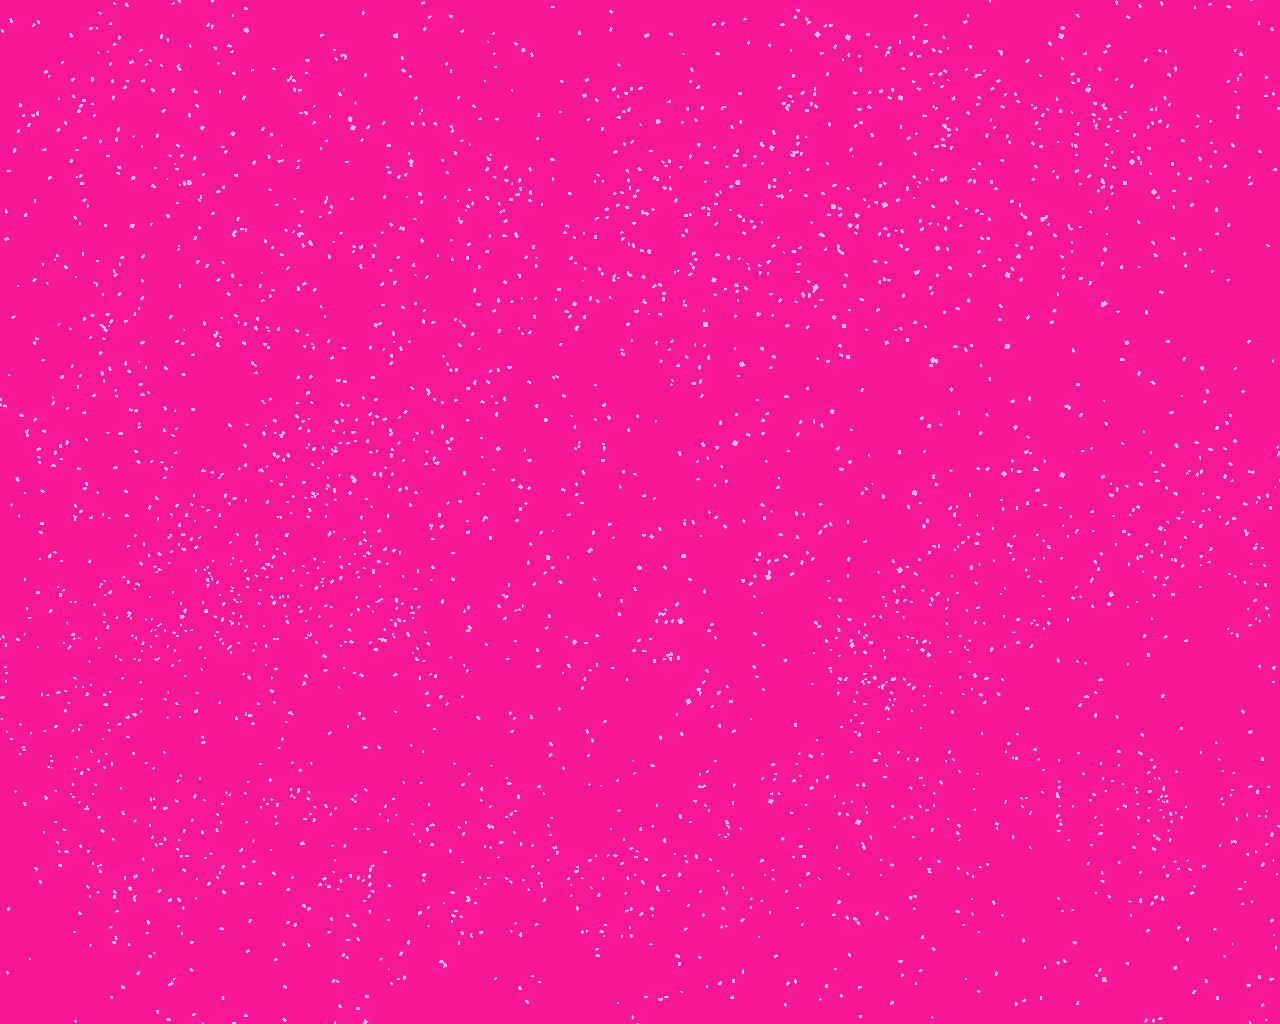 pink glitter wallpaper Funny amp Amazing Images 1280x1024